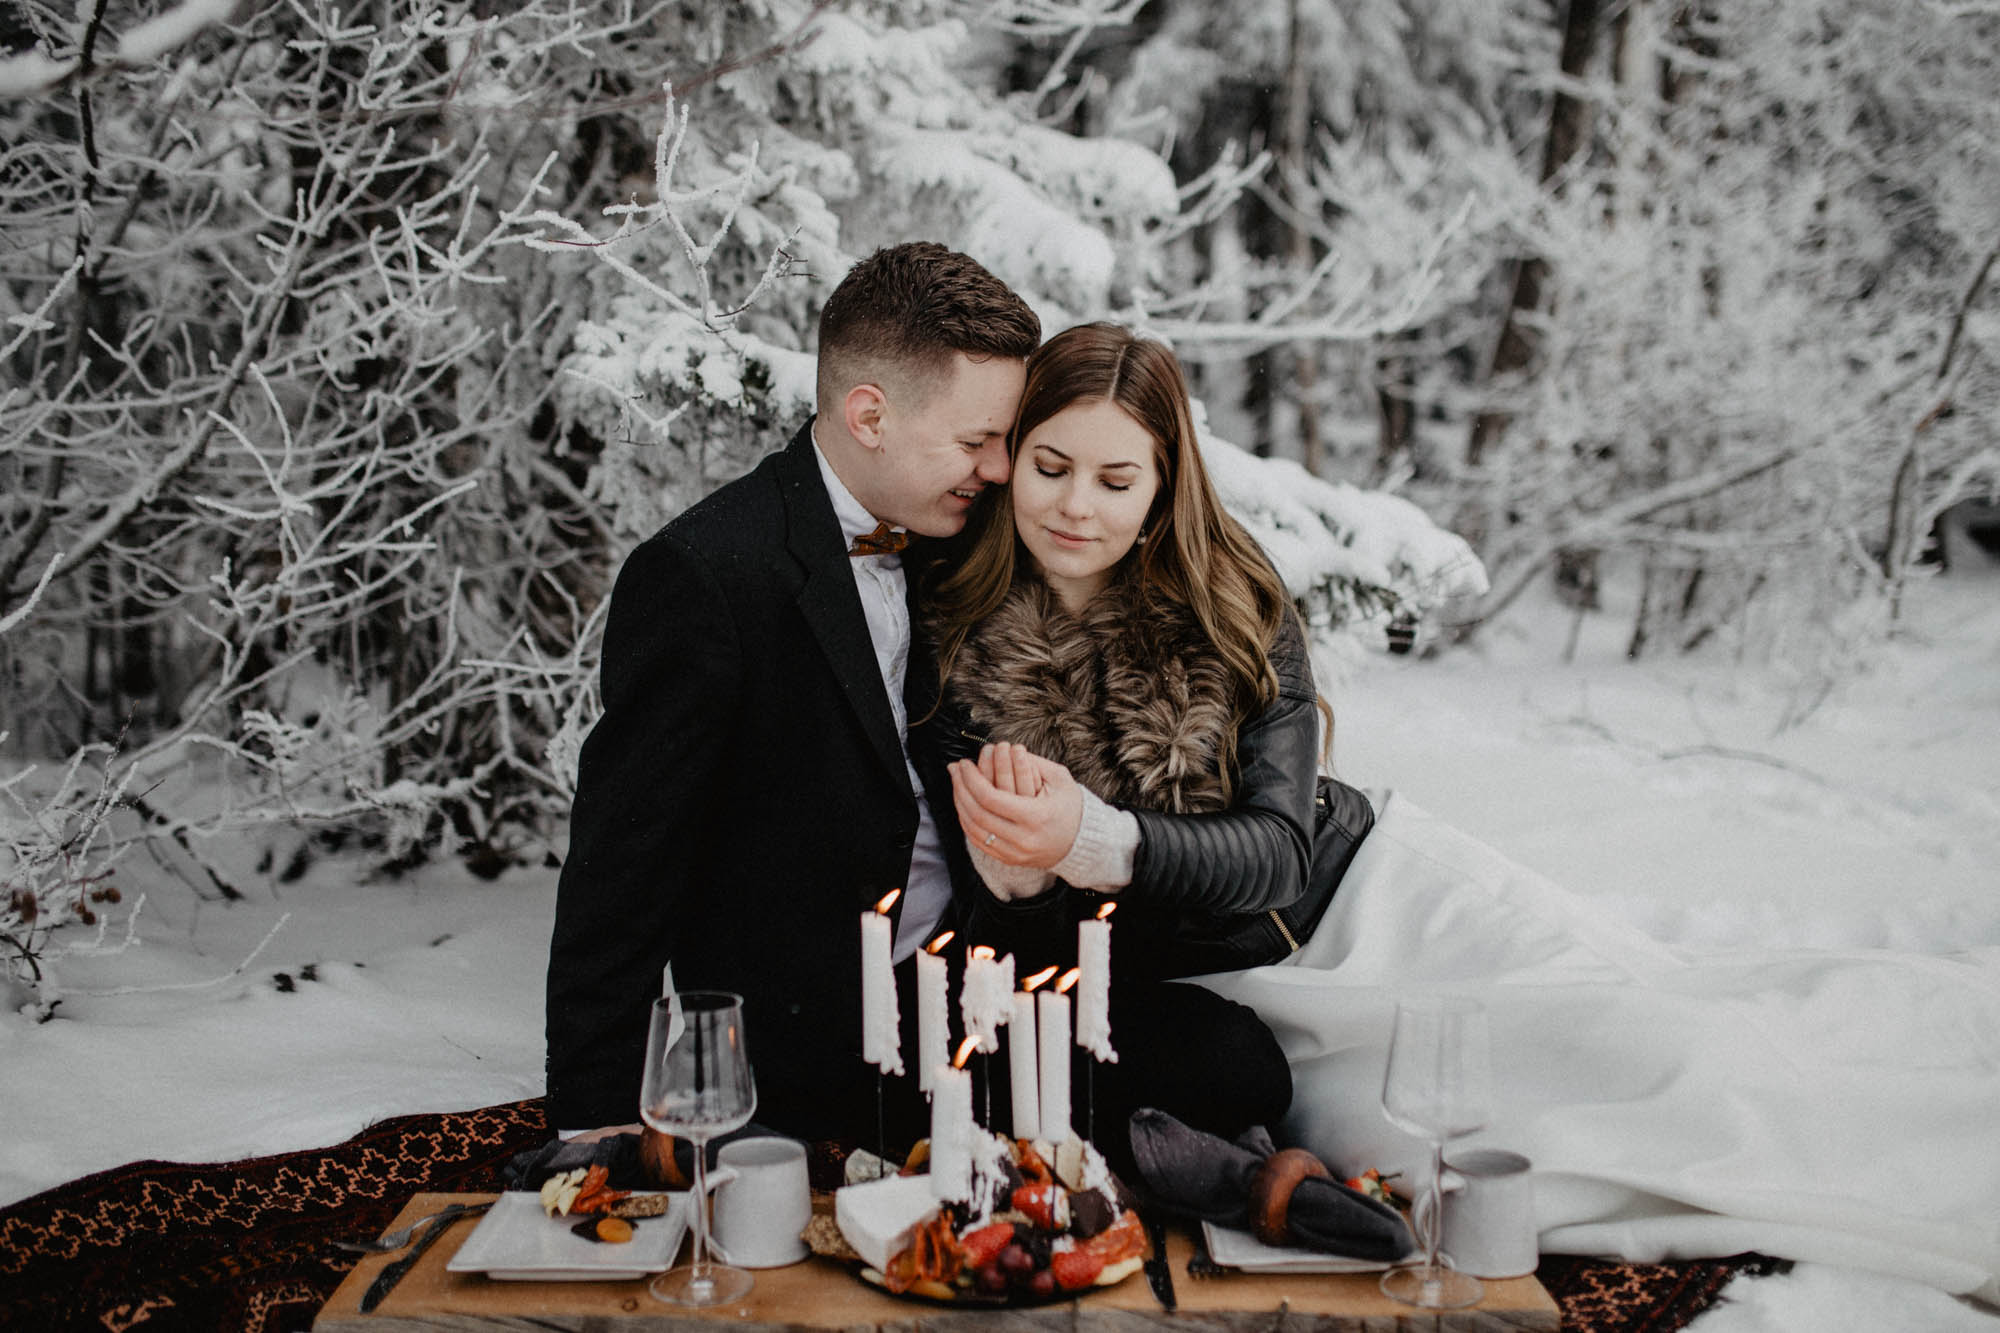 ashley_schulman_photography-winter_wedding_tampere-48.jpg